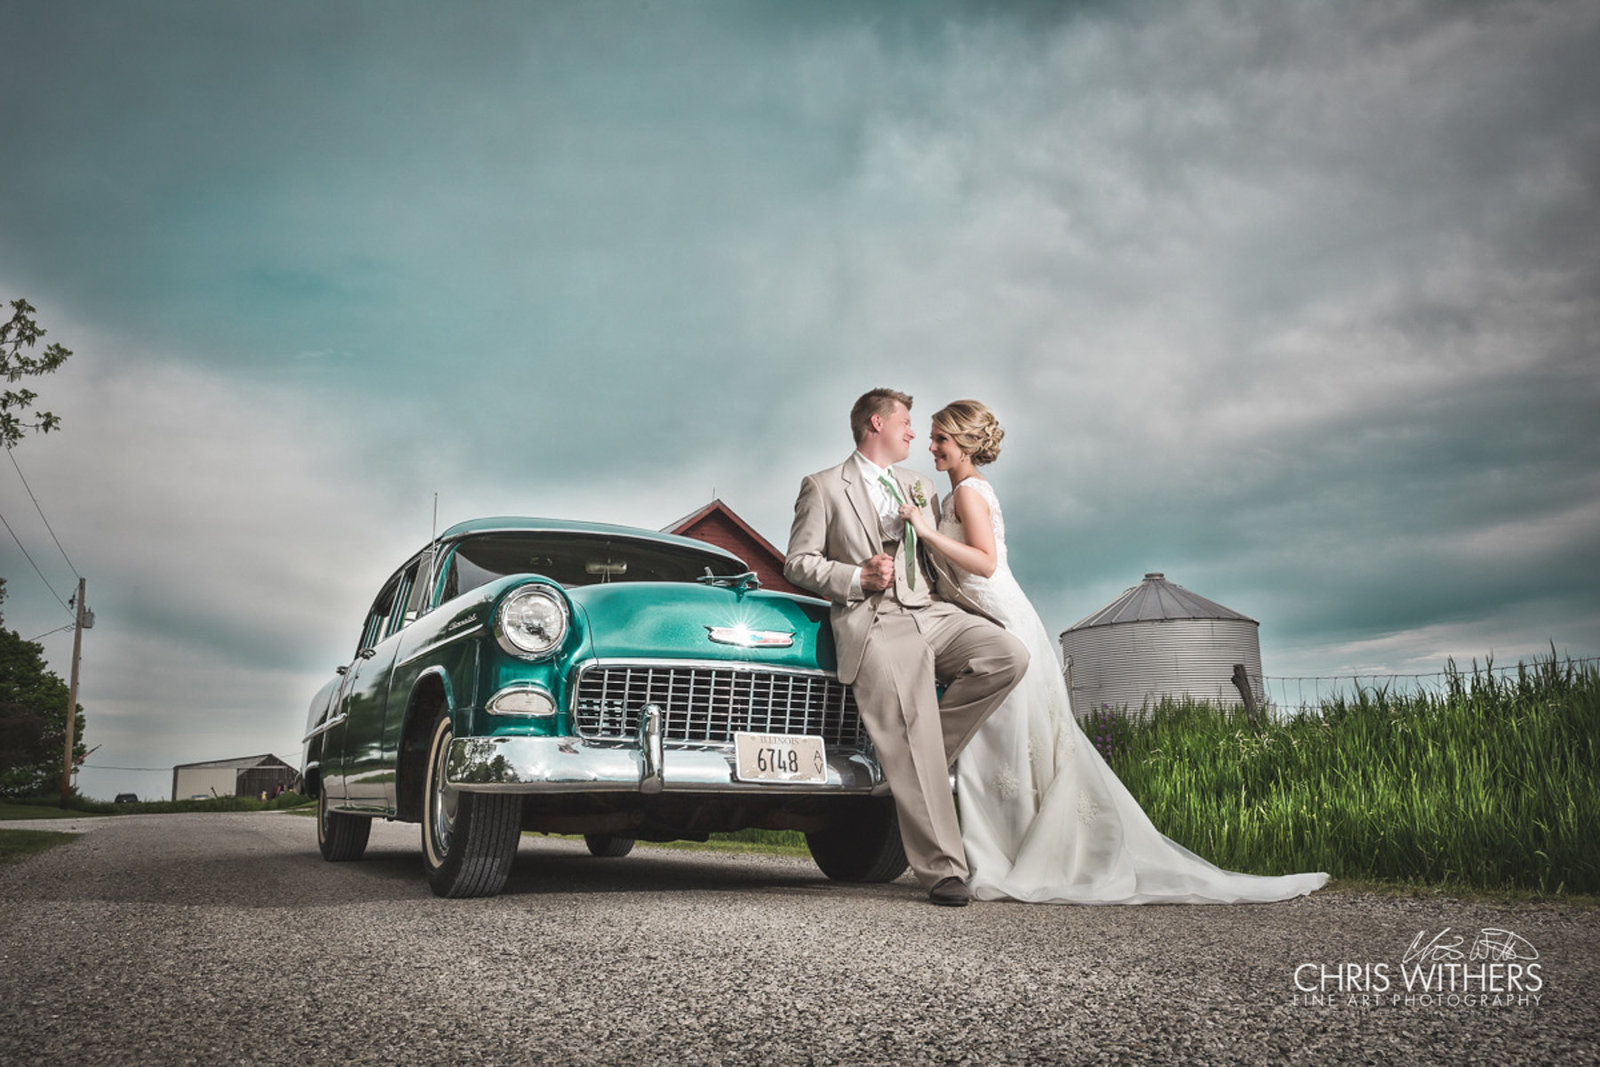 Springfield Illinois Wedding Photographer - Chris Withers Photography (27 of 159)